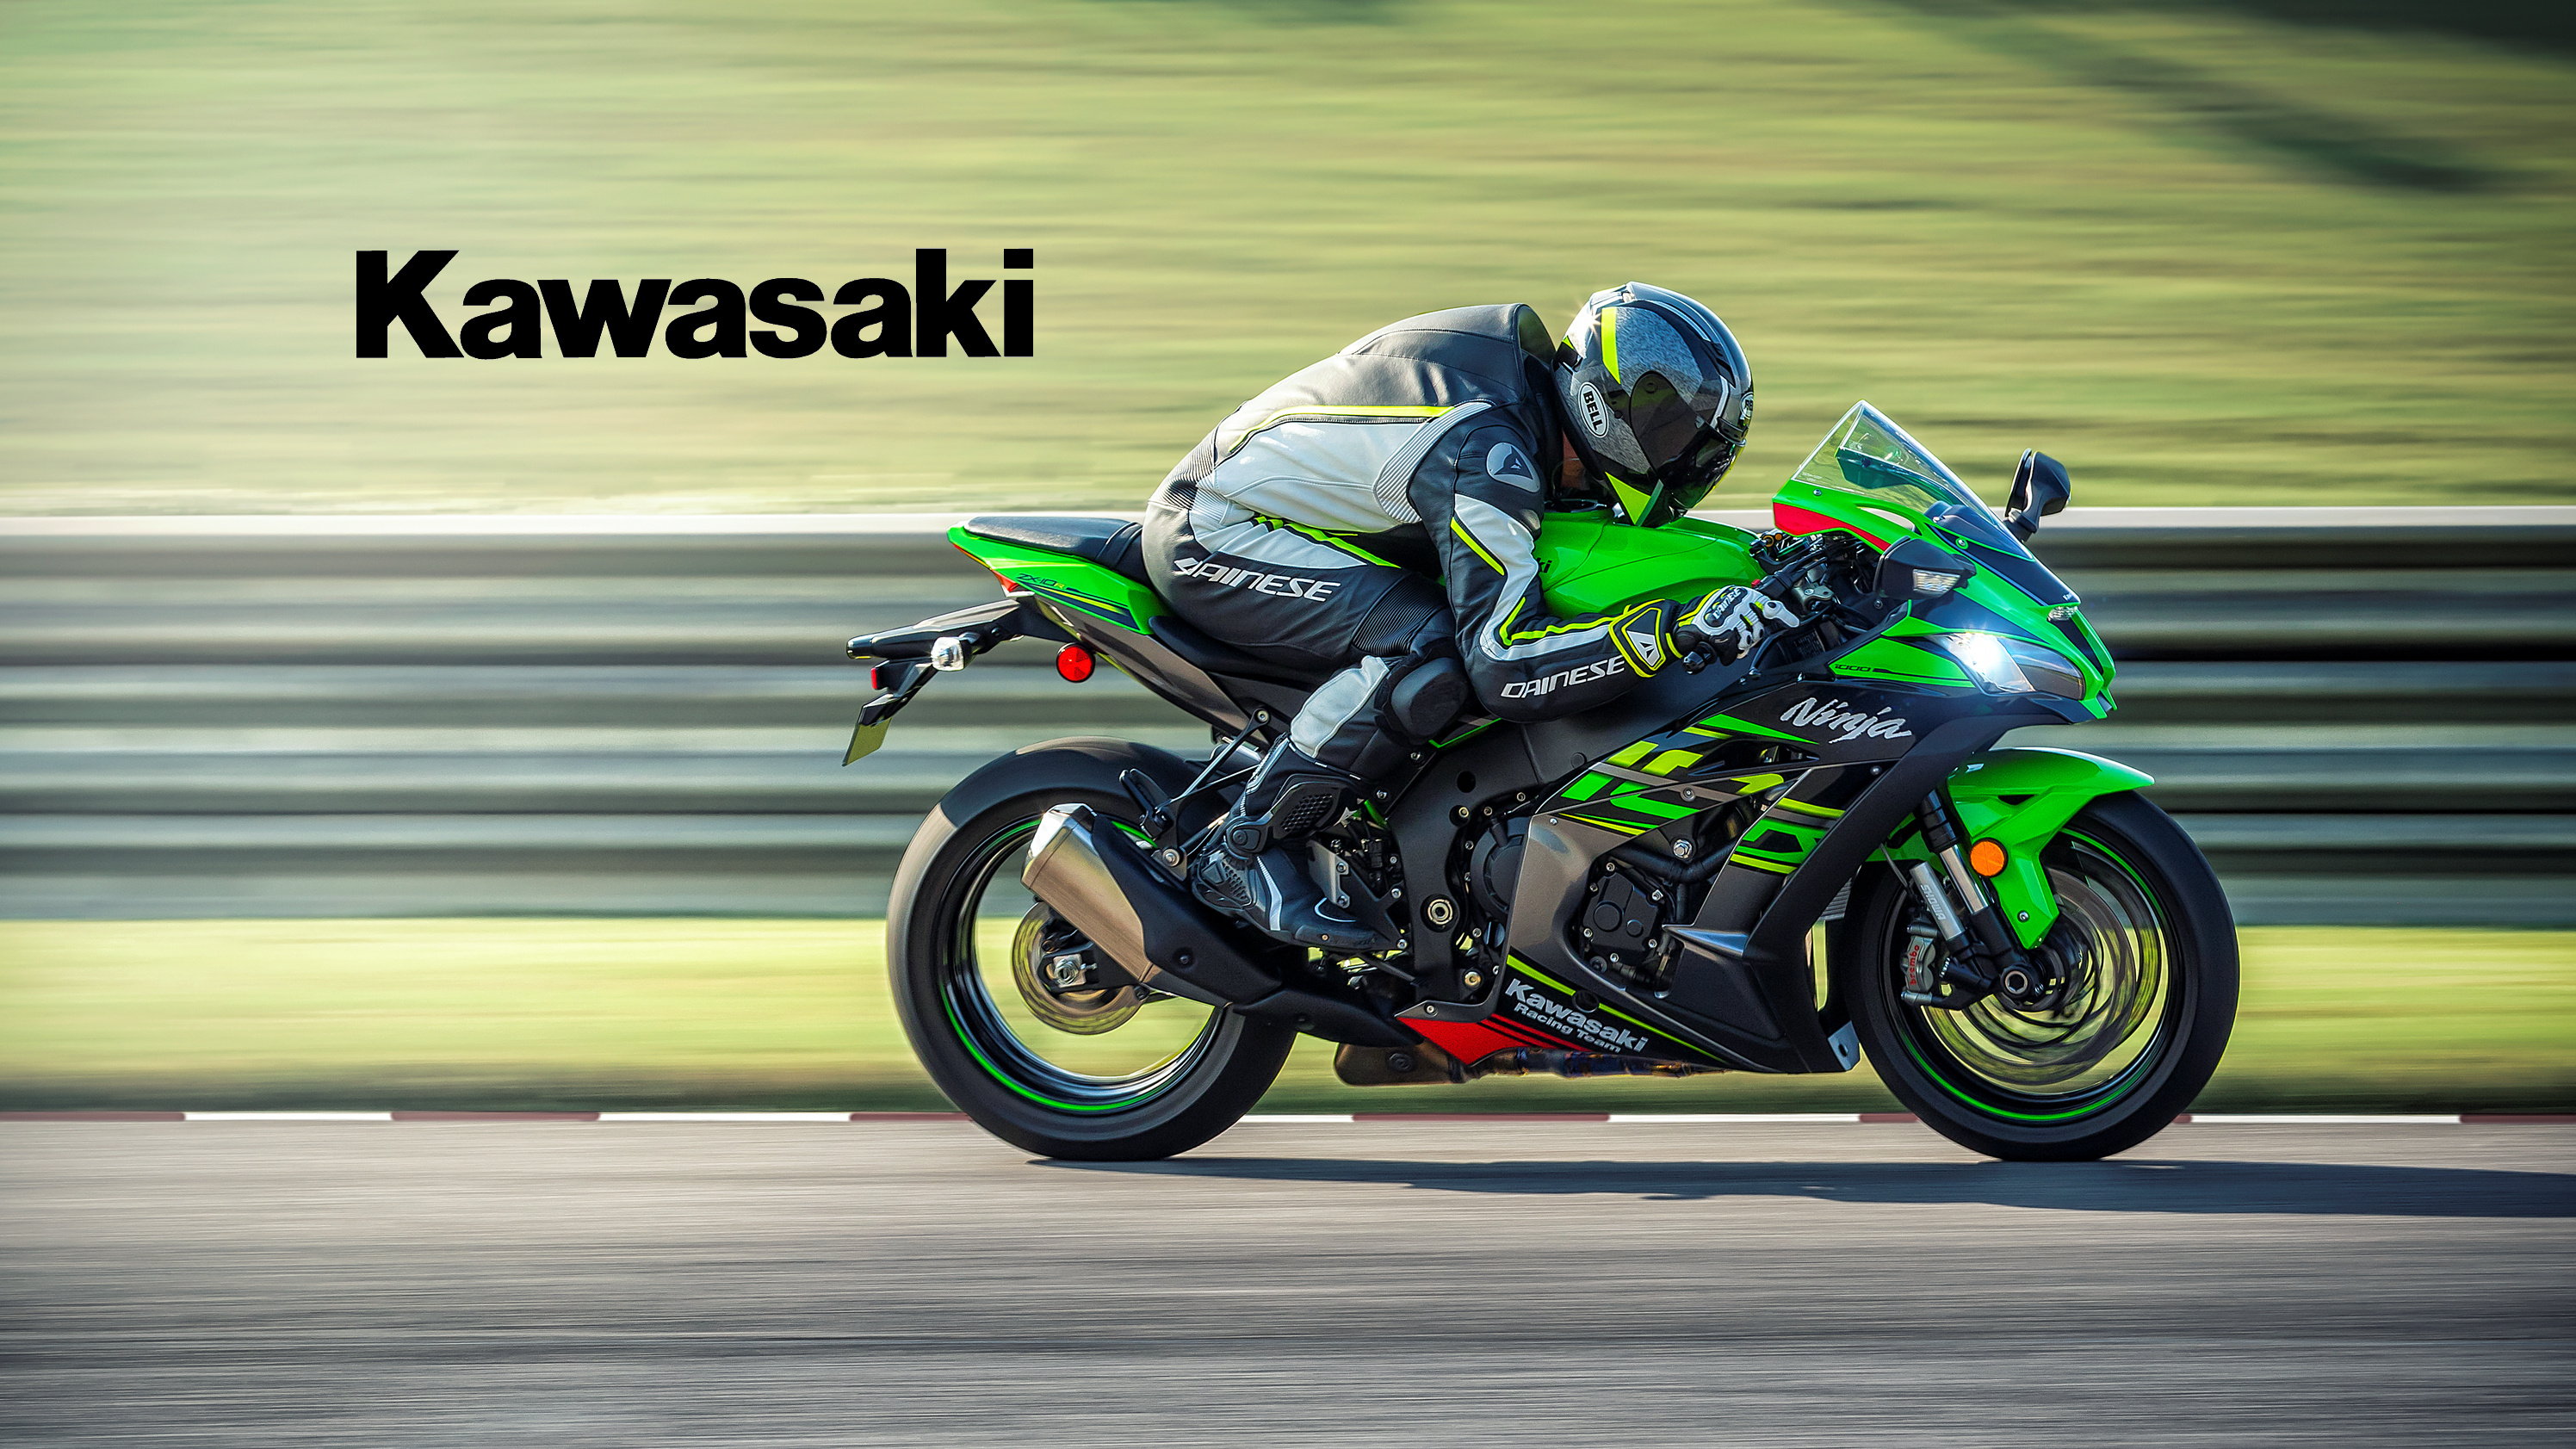 2019 Kawasaki Ninja Zx 10r Top Speed